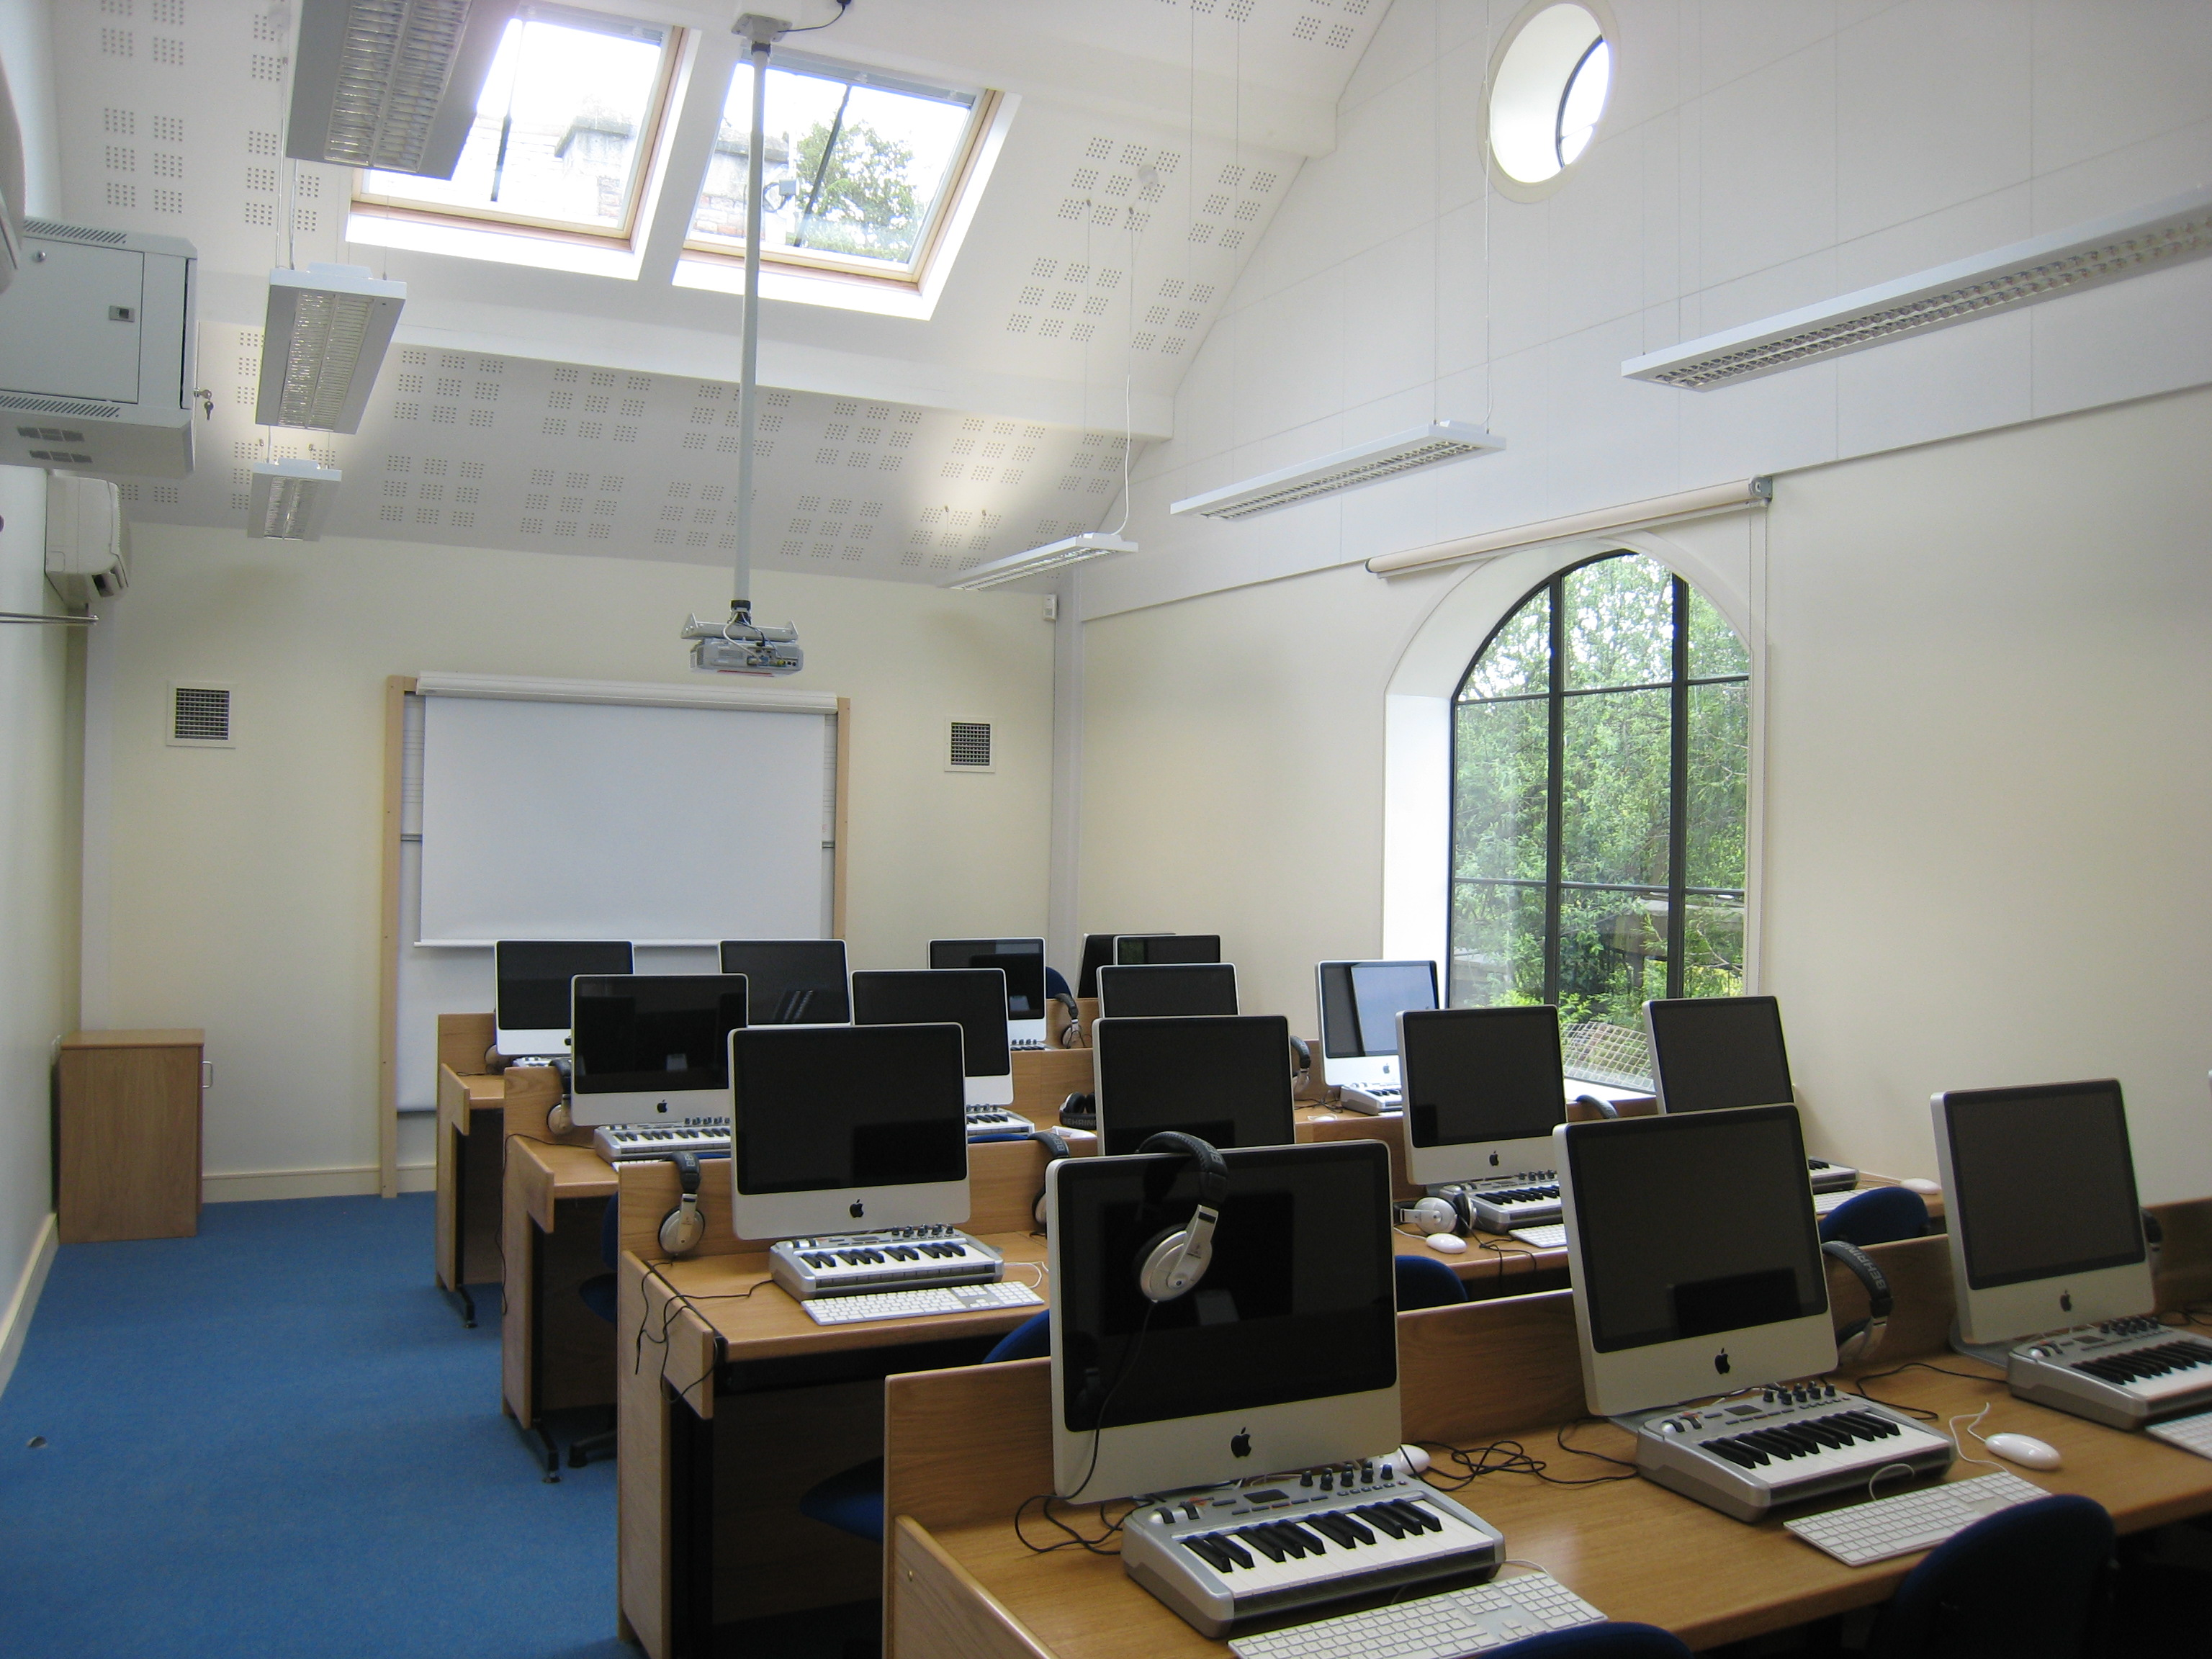 Clifton college music school classroom